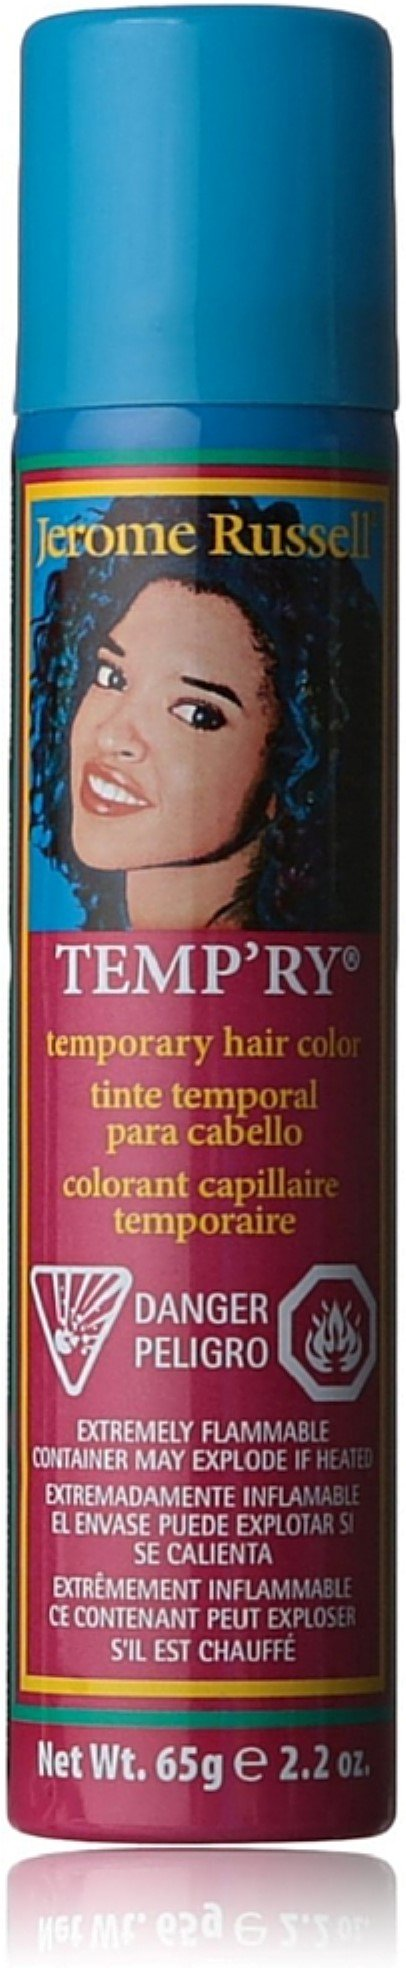 Jerome Russell Temporary Hair Color Spray, Blue 2.2 oz (Pack of 12) by Jerome Russell